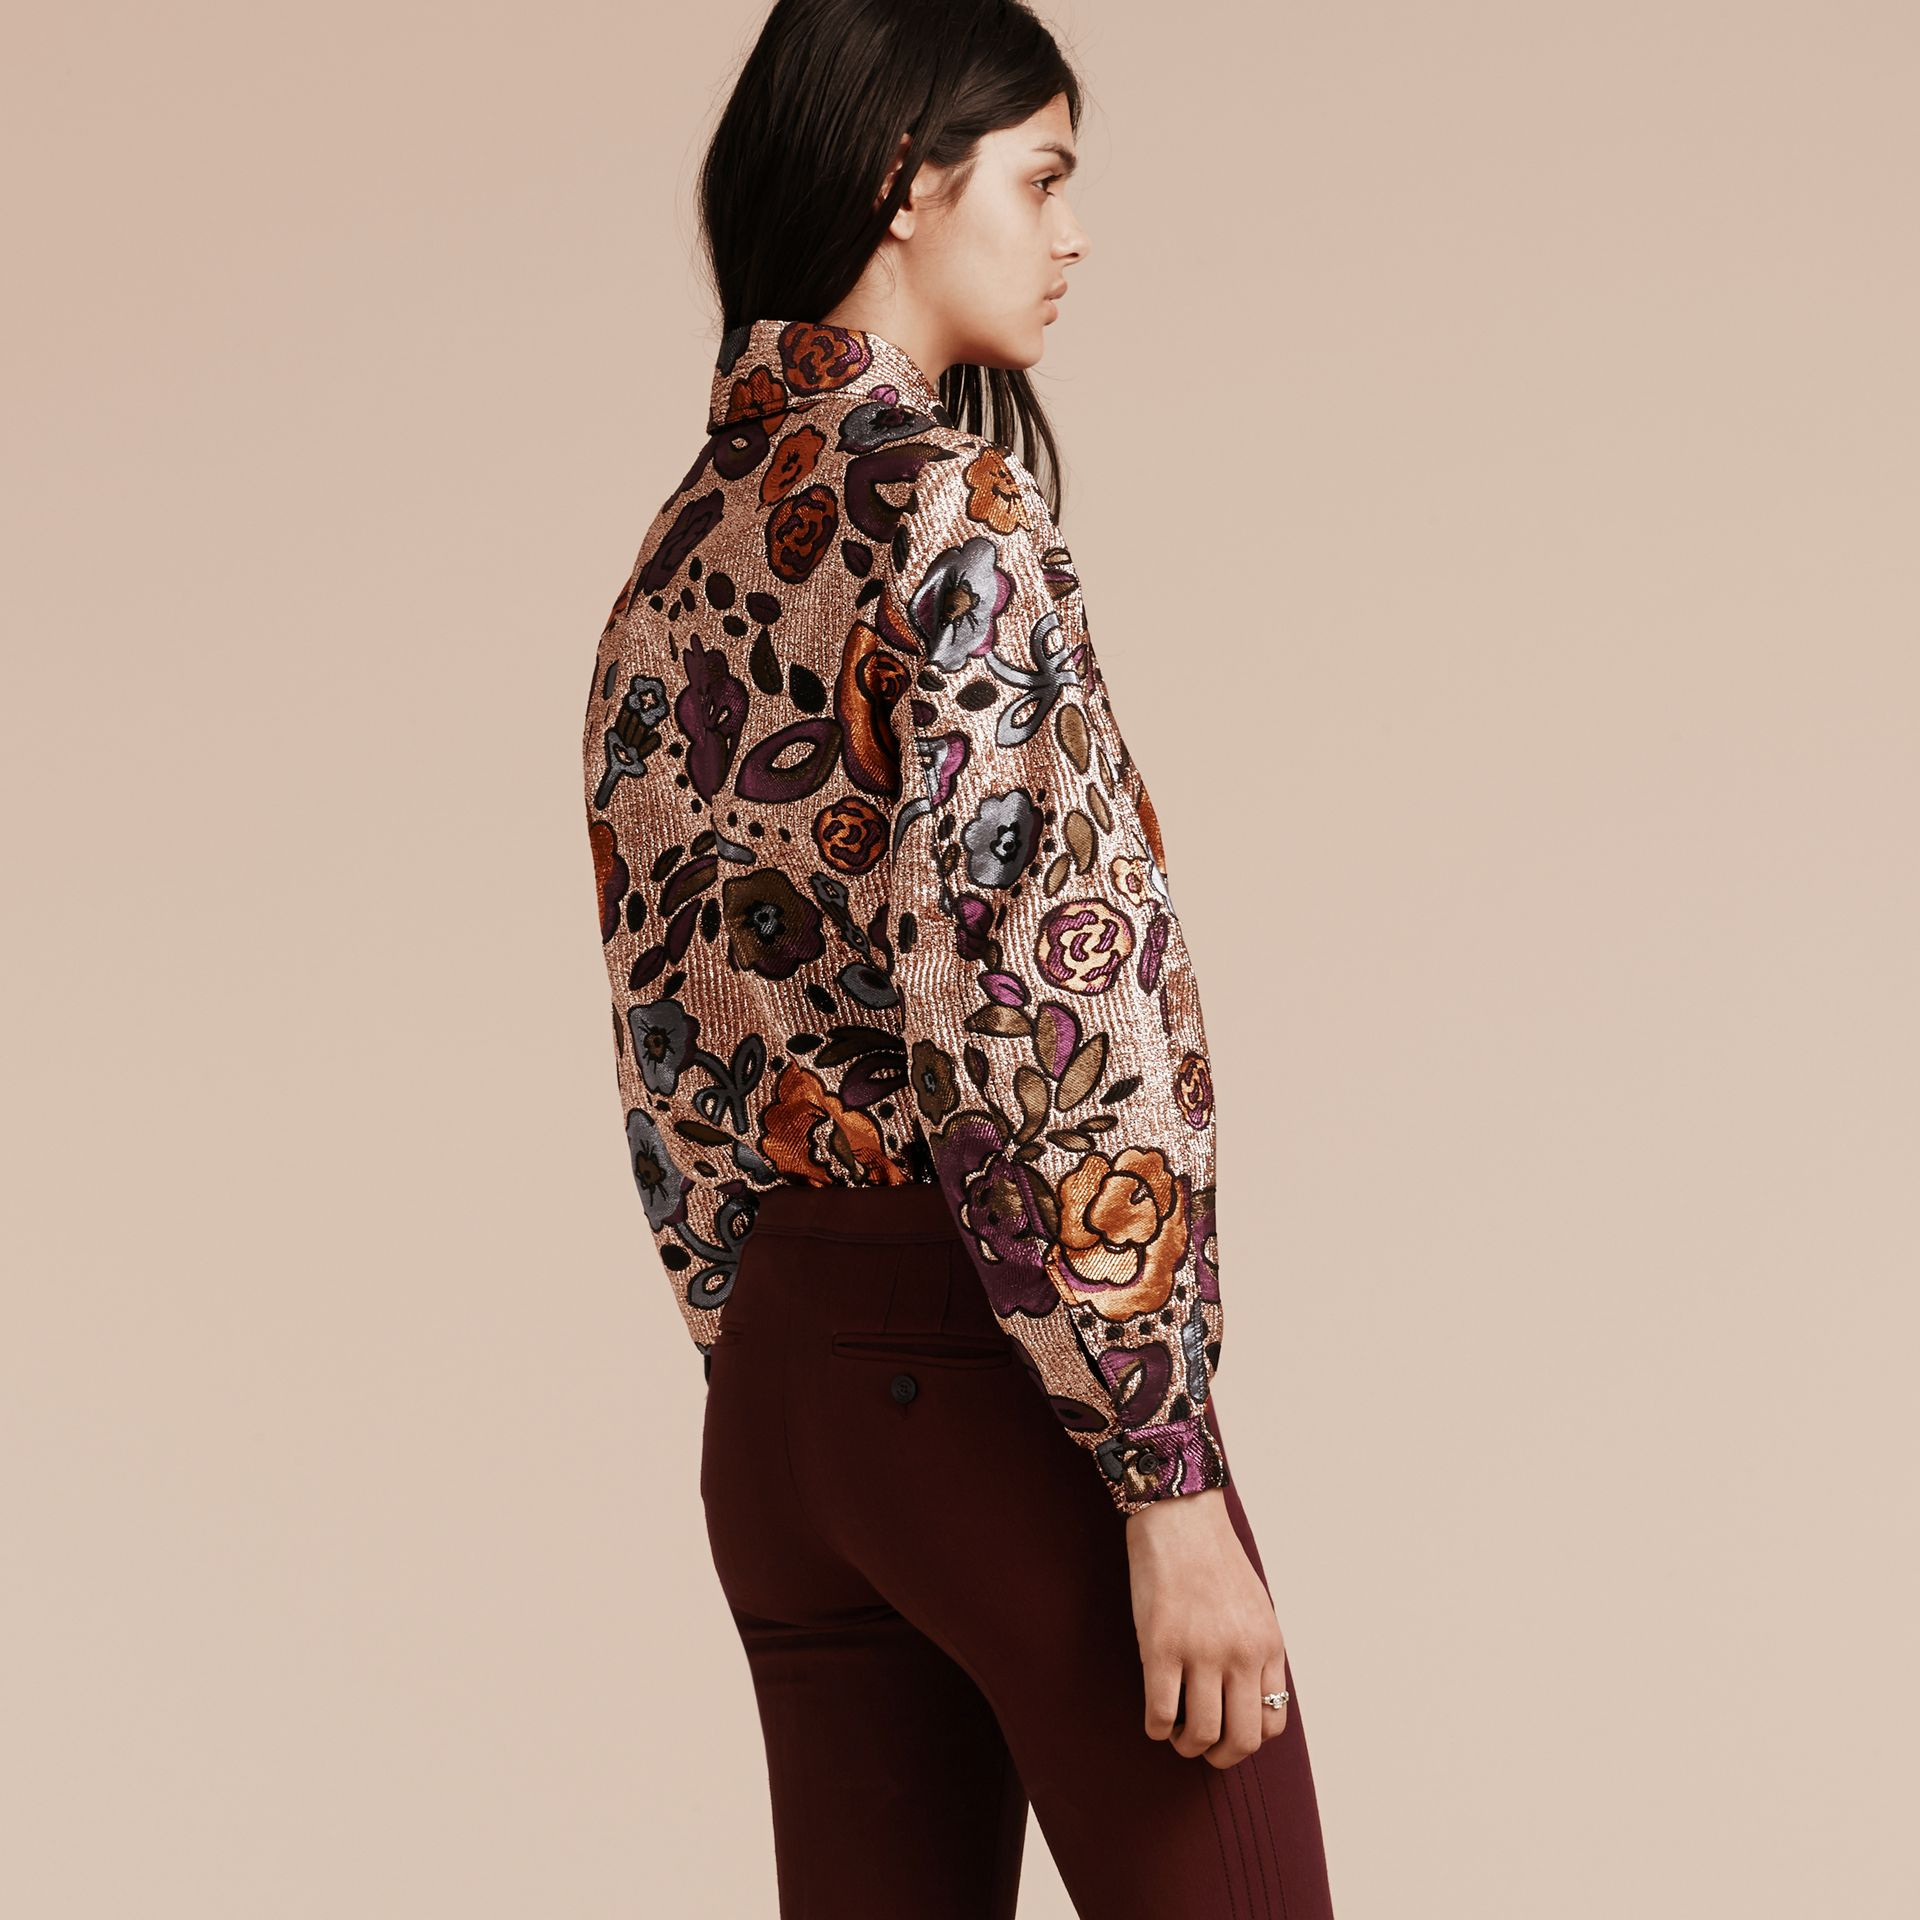 Copper rose Lamé and Floral Jacquard Sculptured Sleeve Shirt - gallery image 3